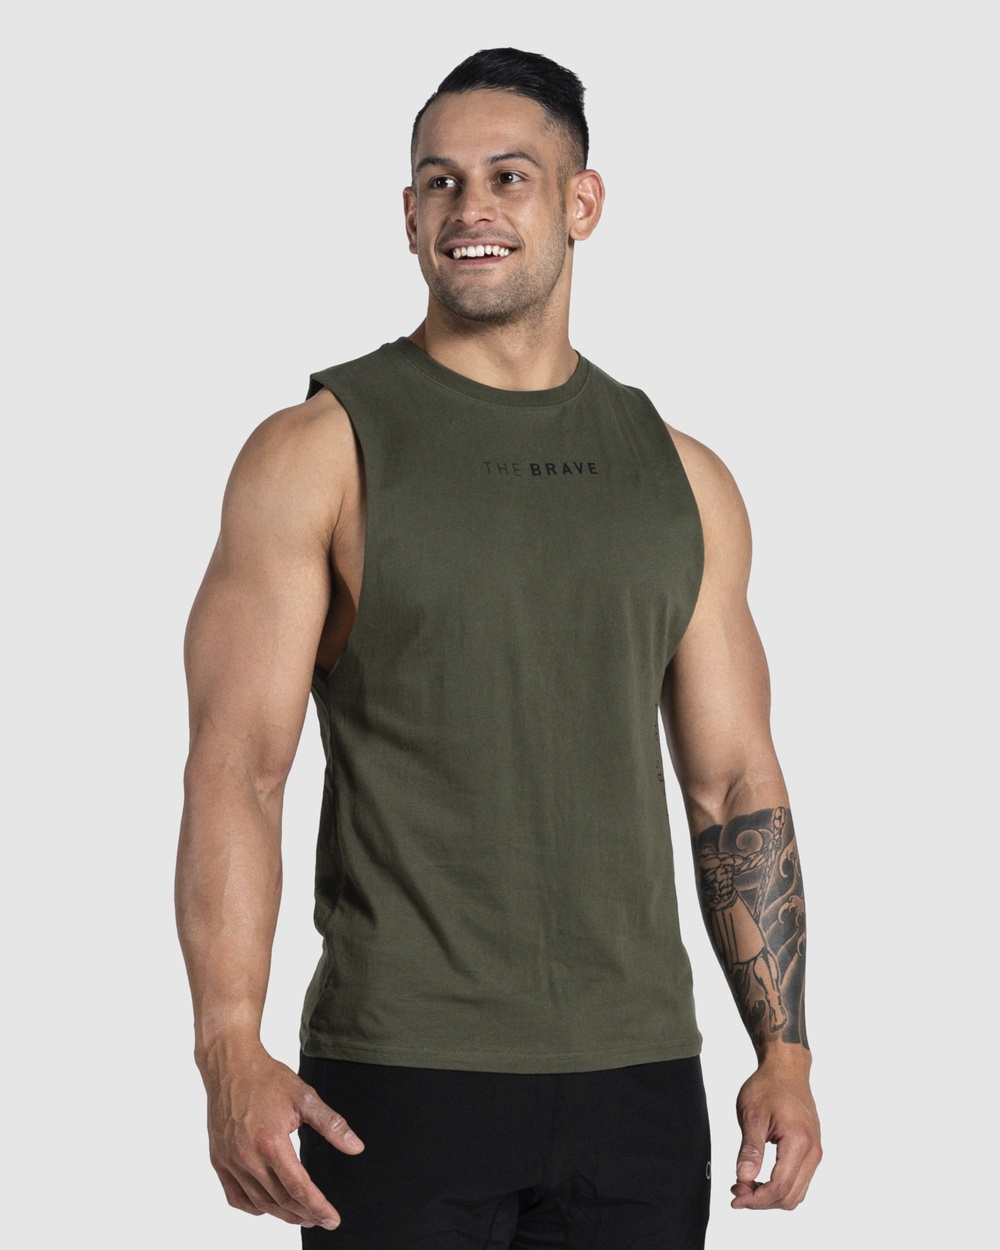 The Brave - Align Tank - Muscle Tops (Green) Align Tank